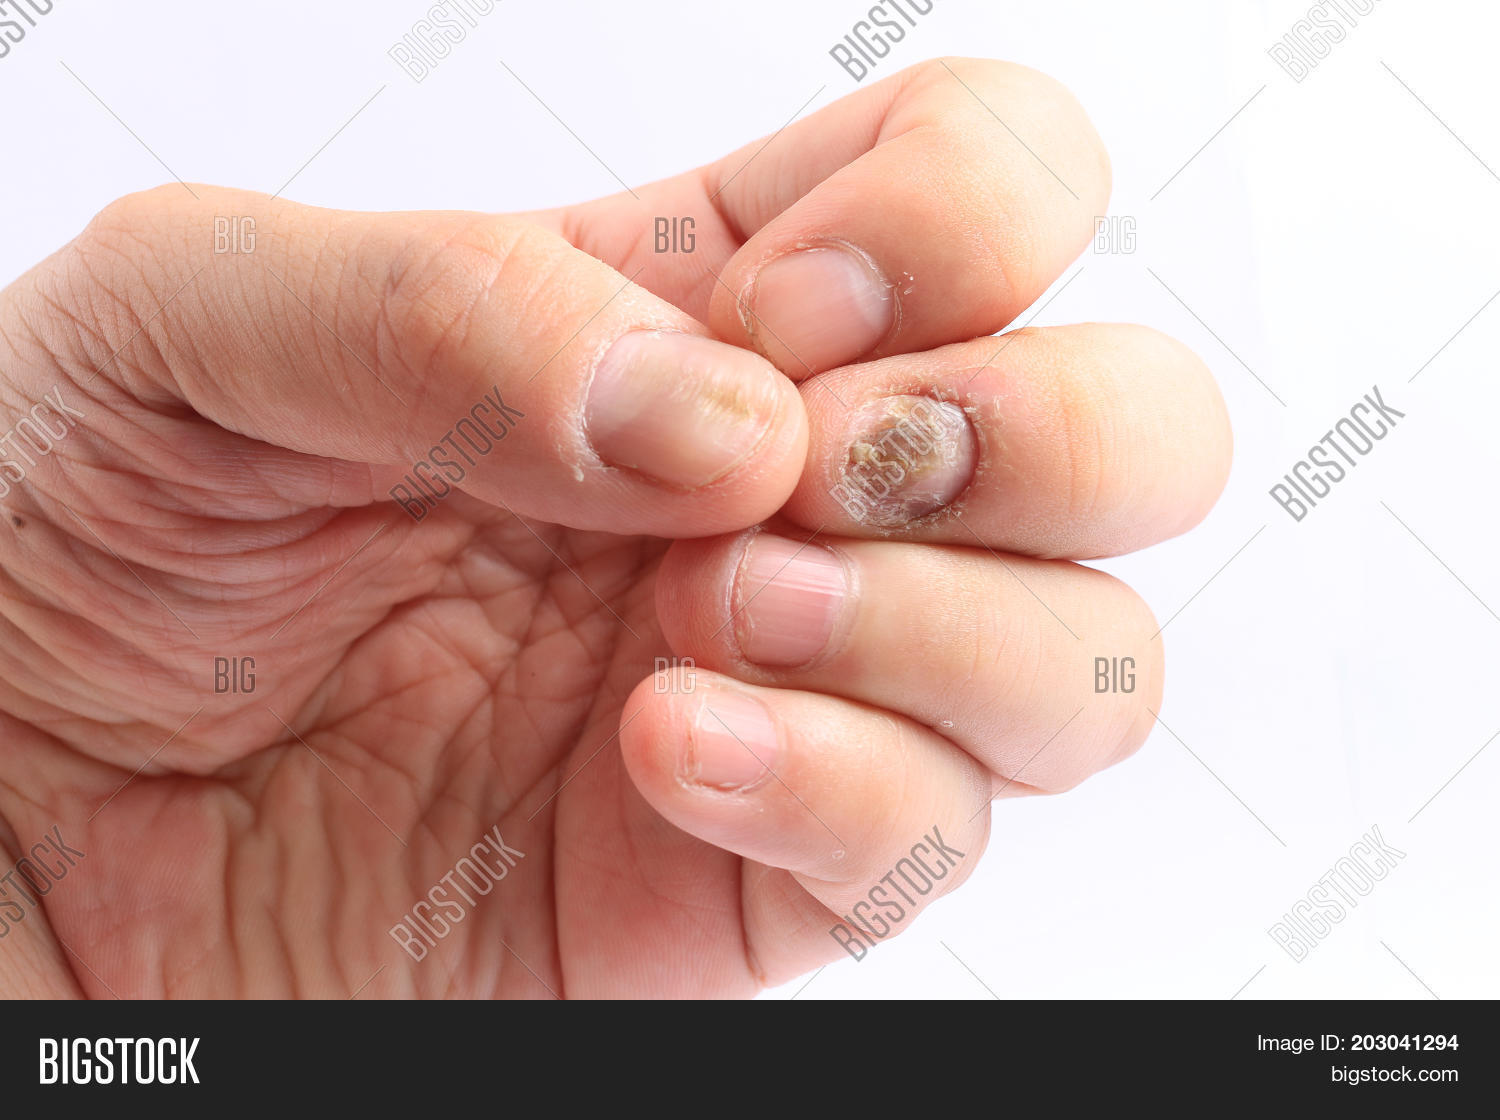 Fungus Infection On Image & Photo (Free Trial) | Bigstock